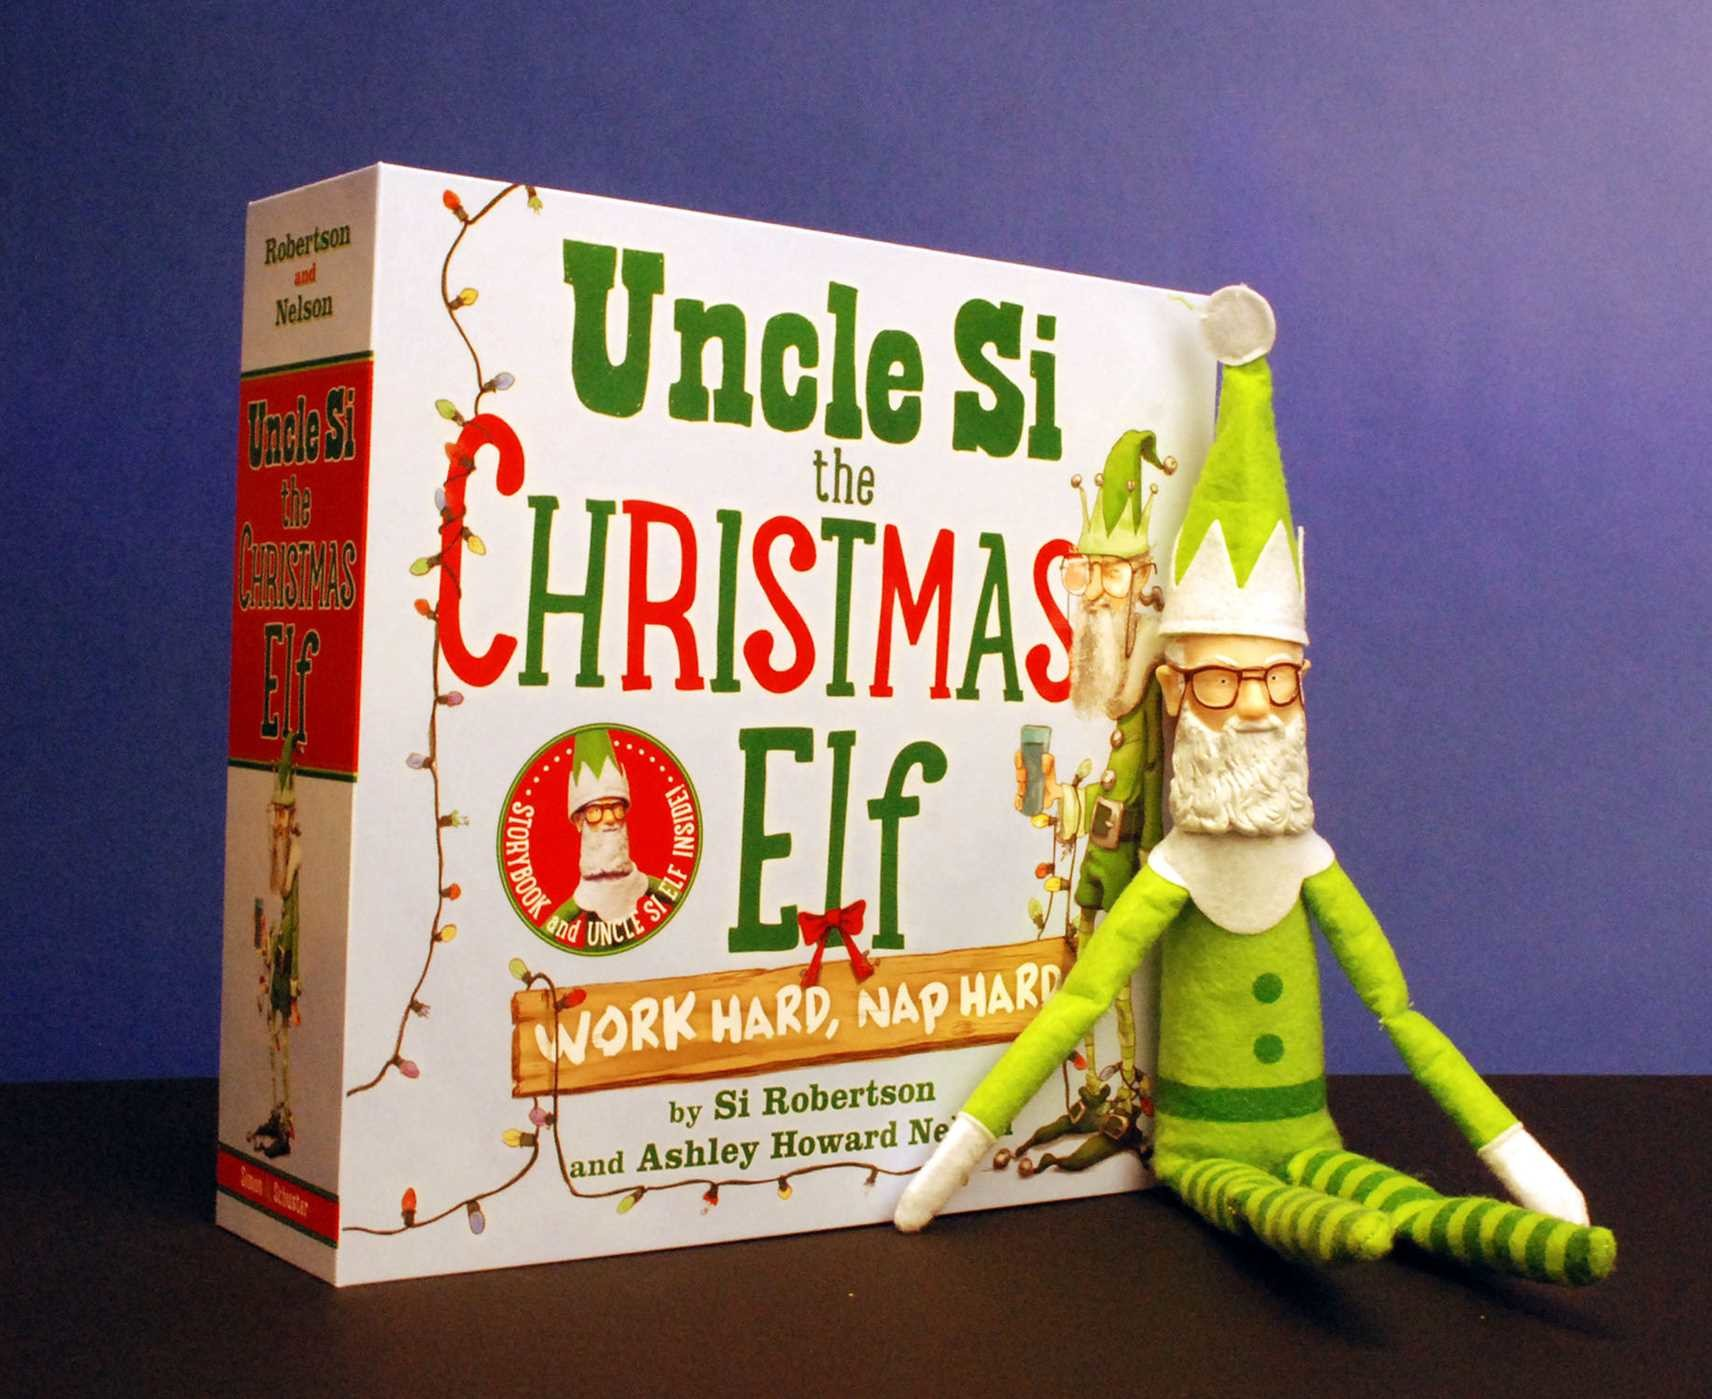 Uncle-si-the-christmas-elf-9781481418218.in01